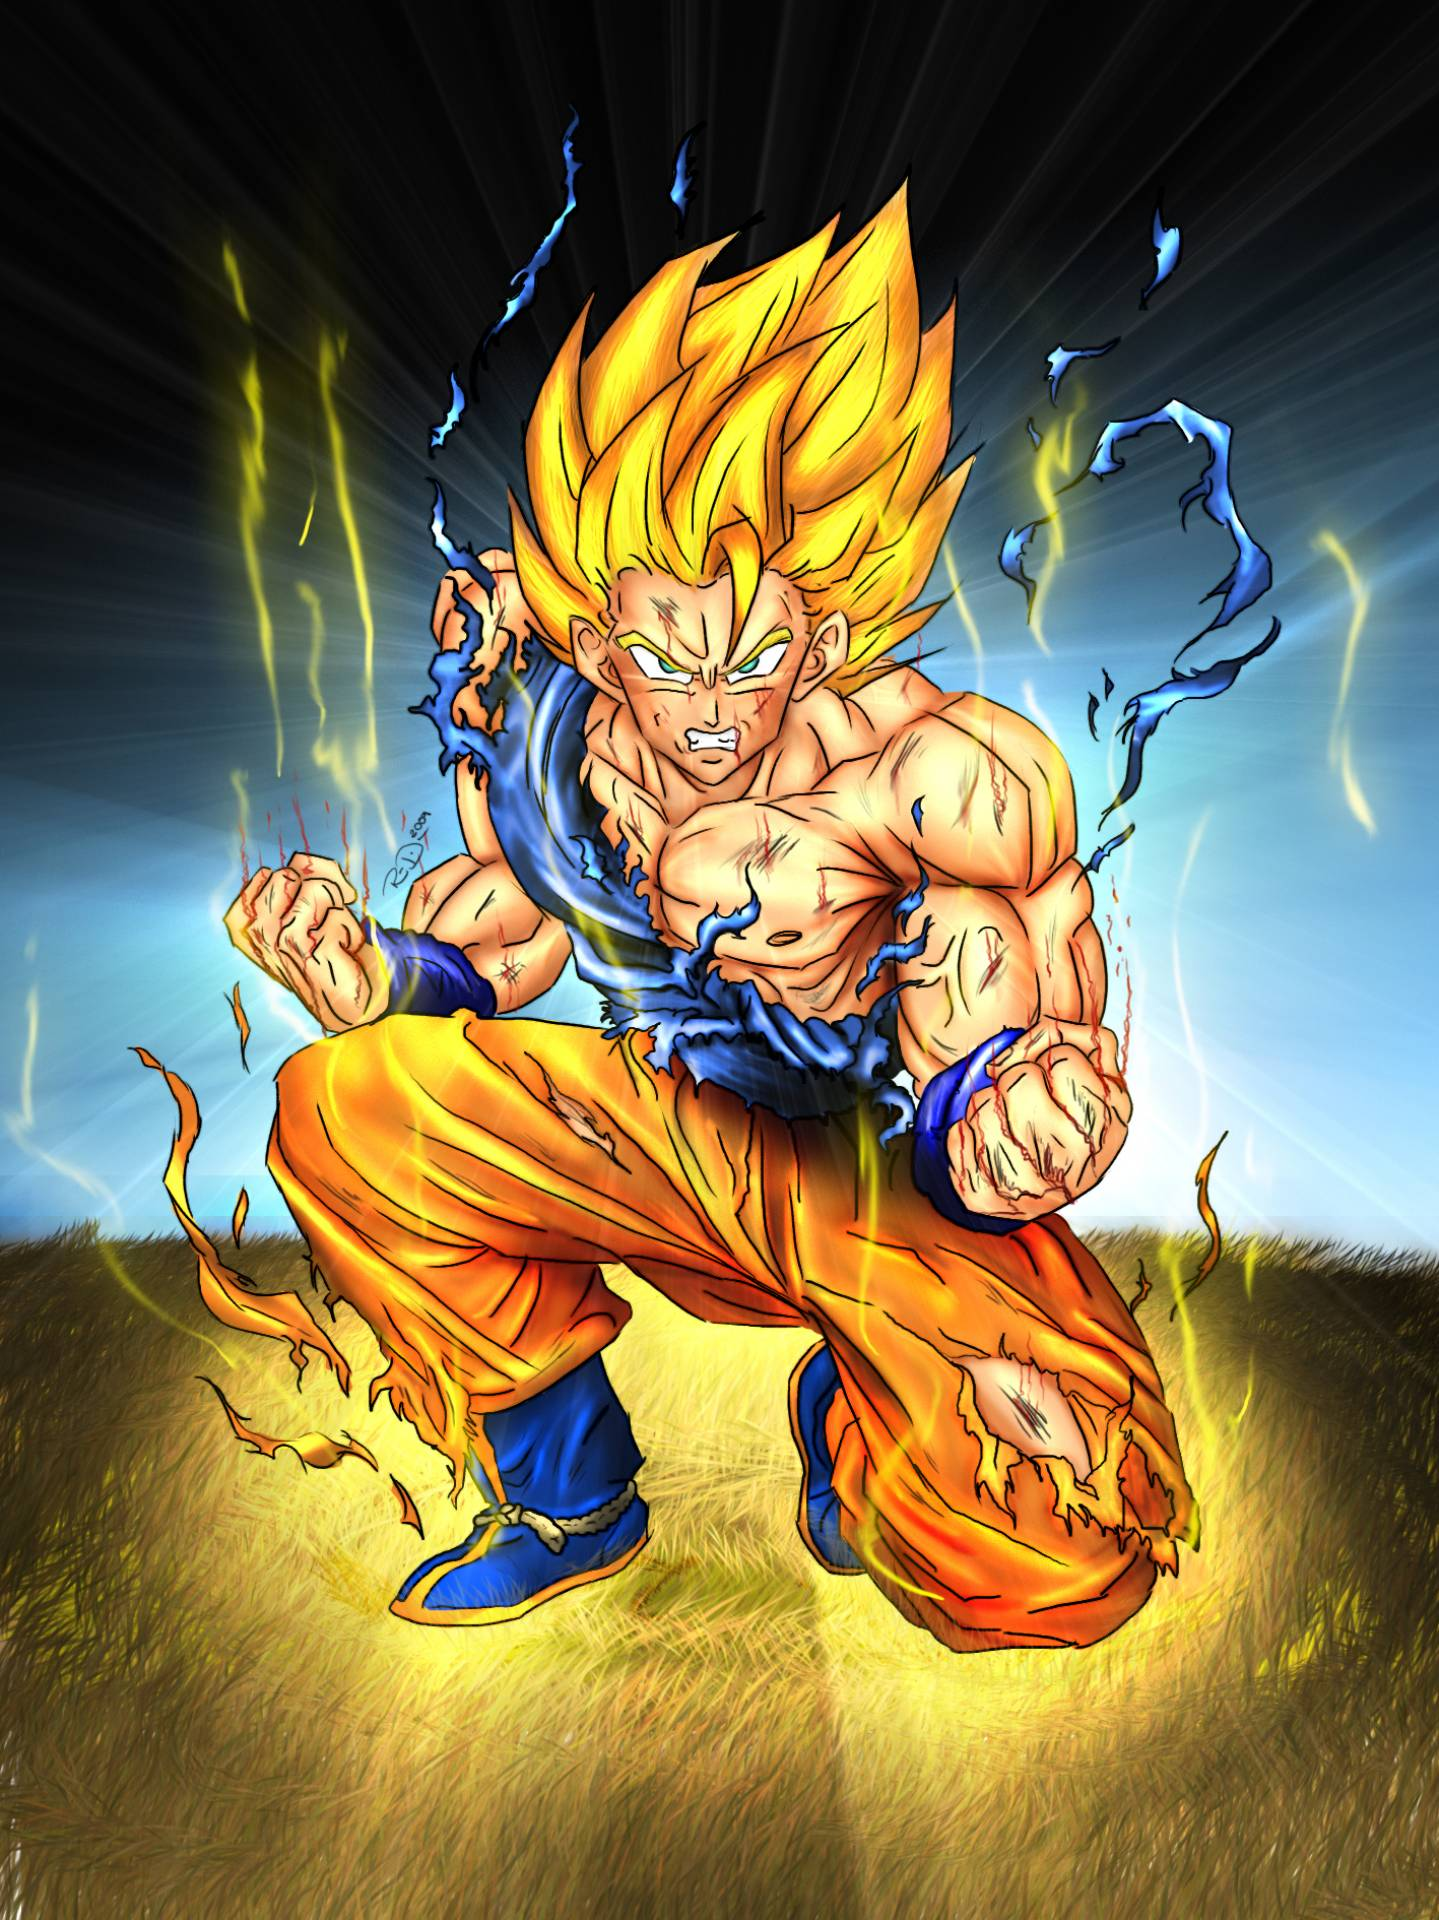 Super Saiyan Goku Dragon Ball Z Fan Art 35516340